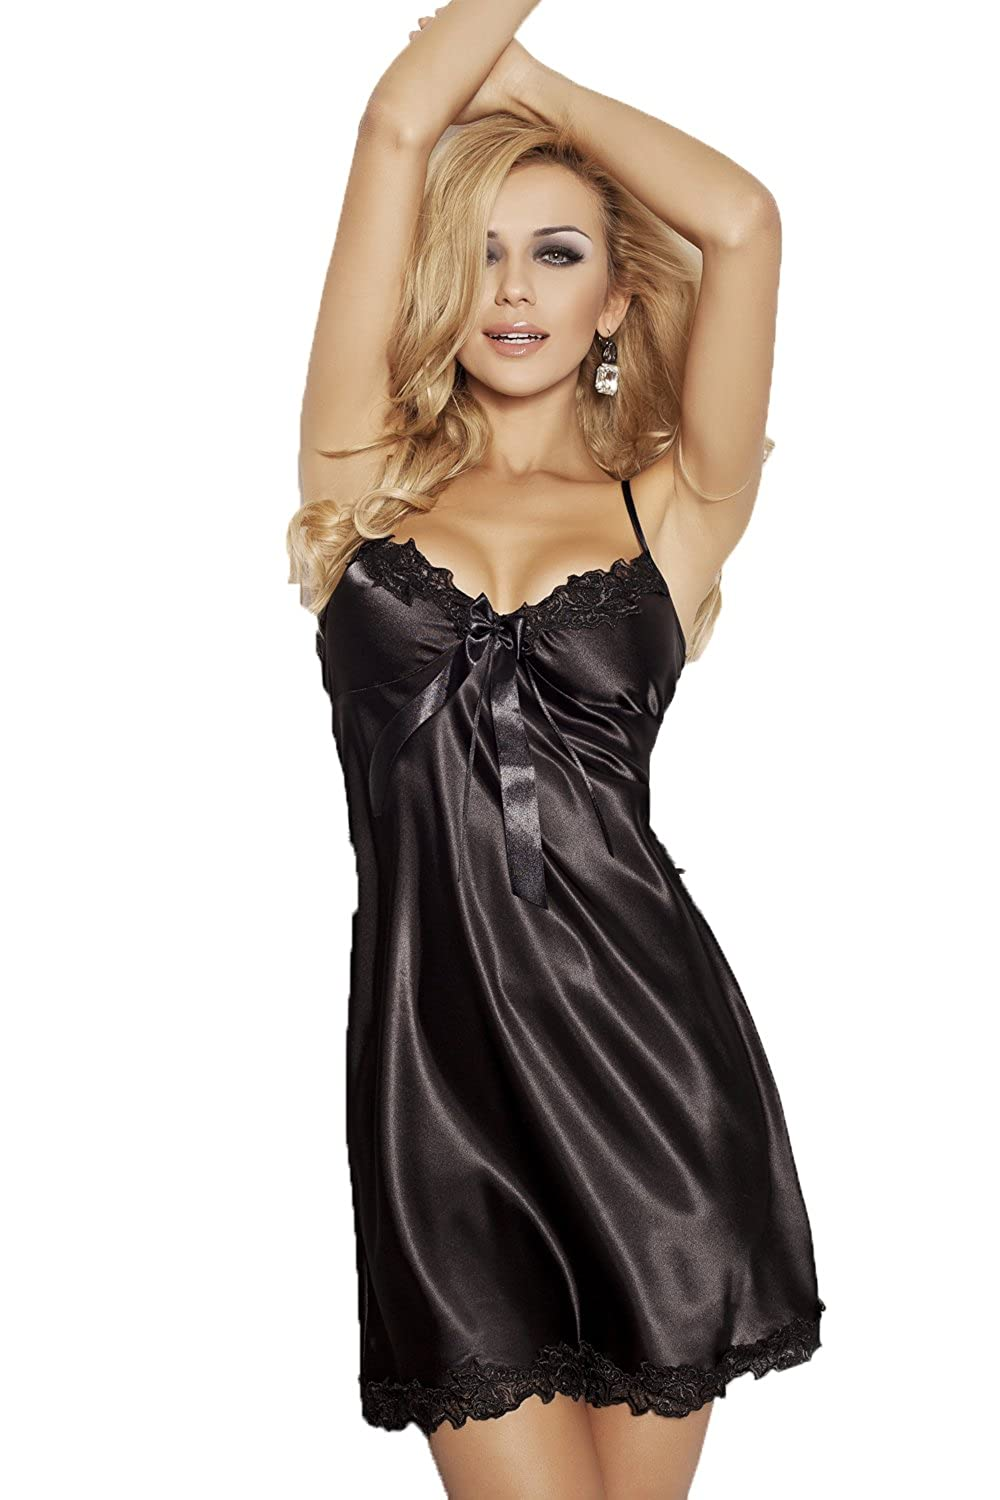 Lady-Mode Negligee aus Satin Rita (S - 2XL)